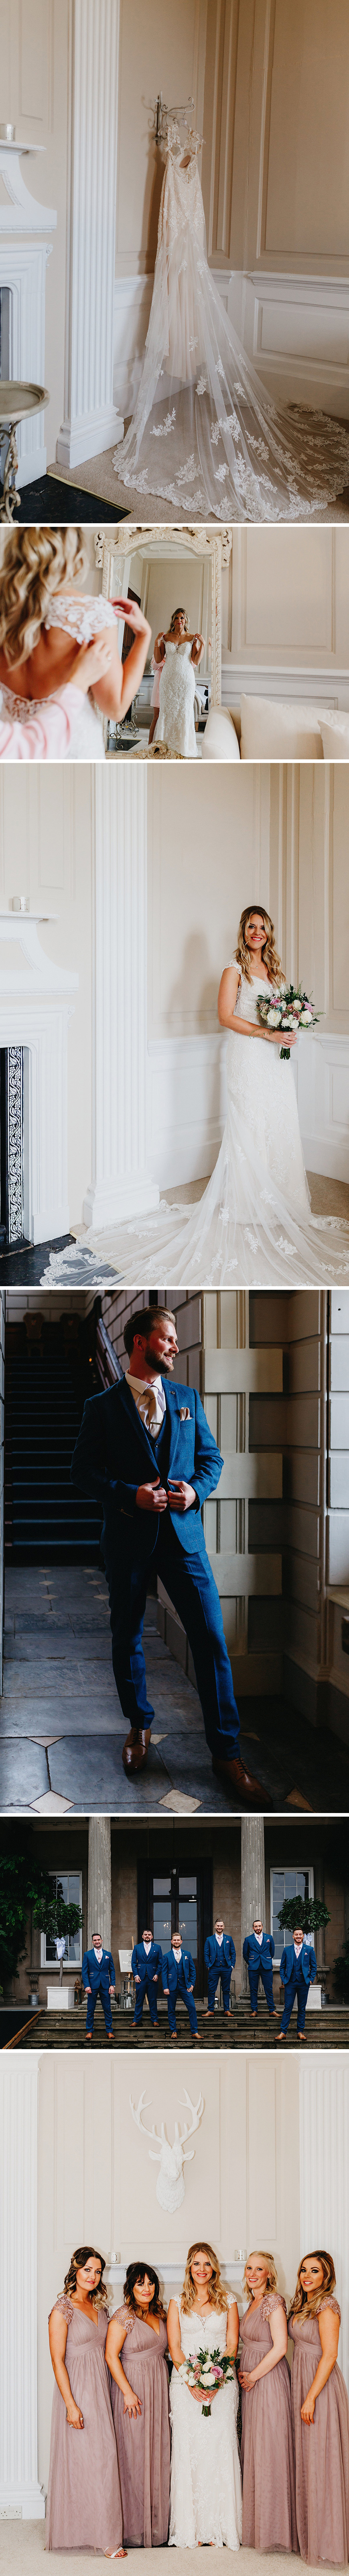 Real Wedding - Danielle and Chris's Refined Country Wedding at Davenport House | CHWV